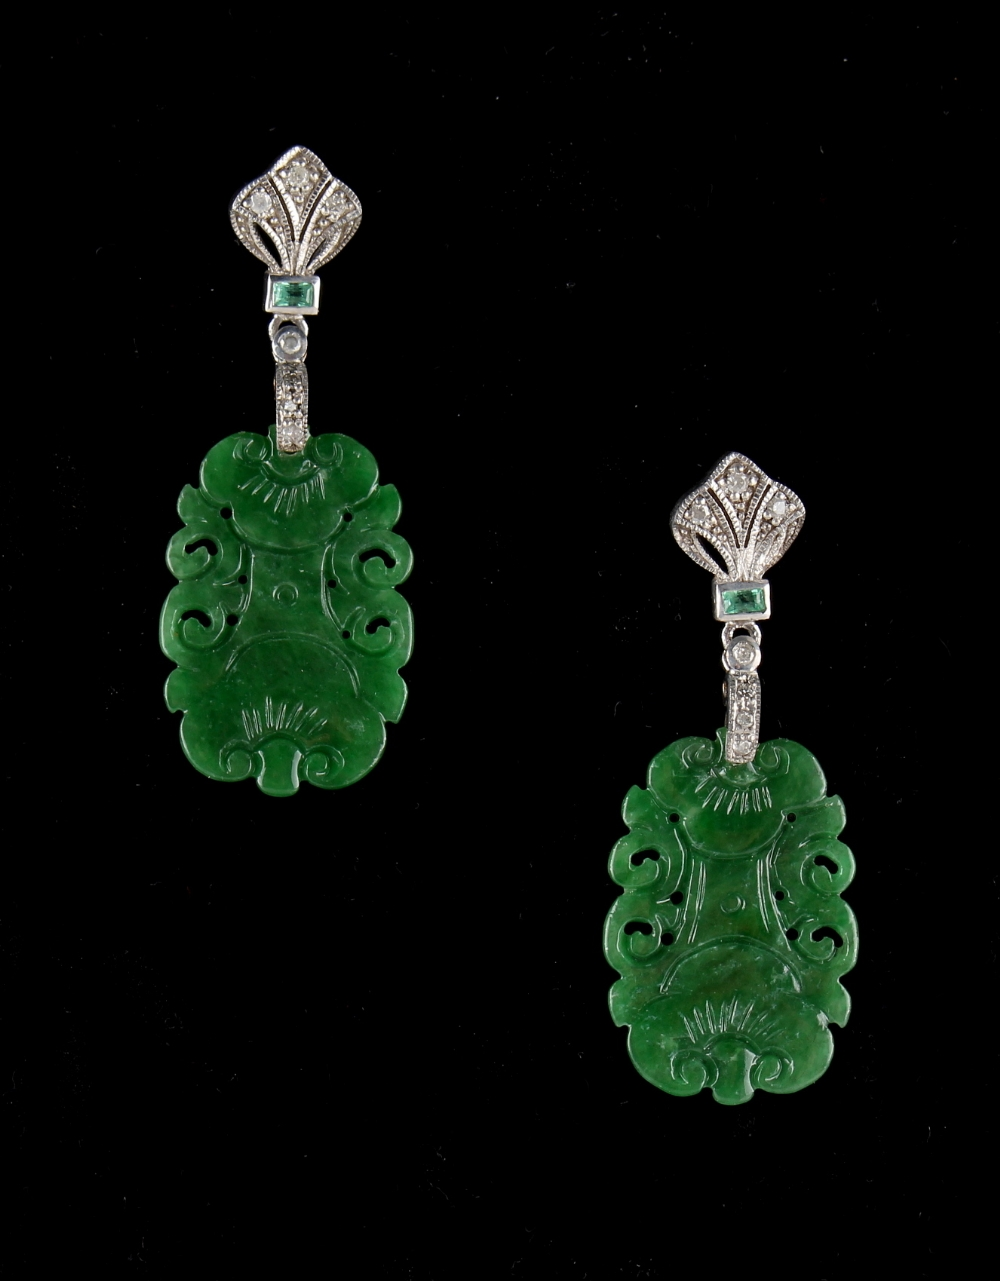 Lot 224 - A pair of Chinese carved jadeite & diamond pendant earrings, the apple green jadeite plaques each